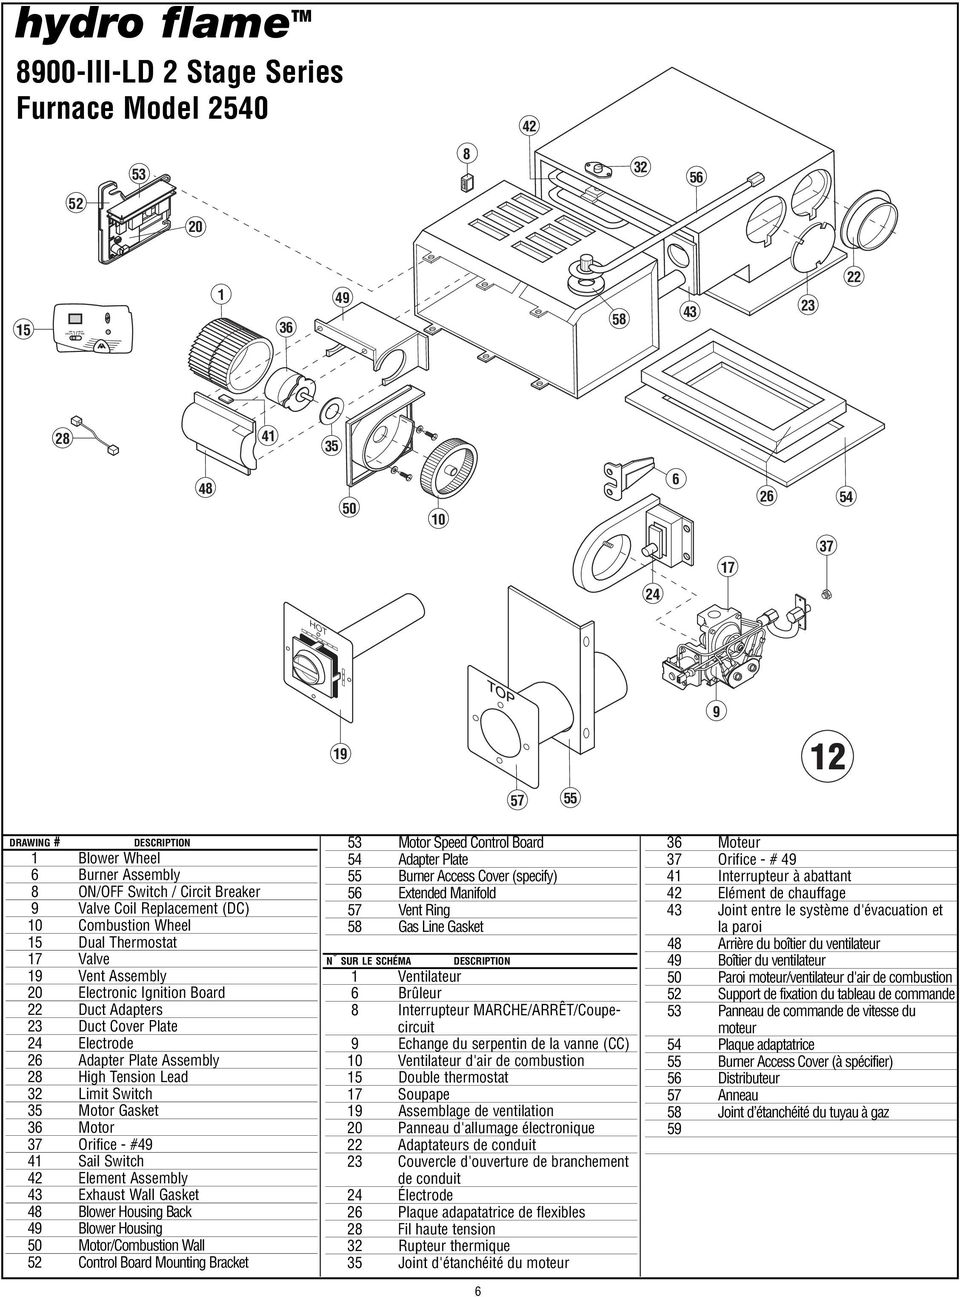 technical installation manual patent no us 6 464 000 6 719 207  adapters 23 duct cover plate 24 electrode 26 adapter plate assembly 28 high tension lead 32